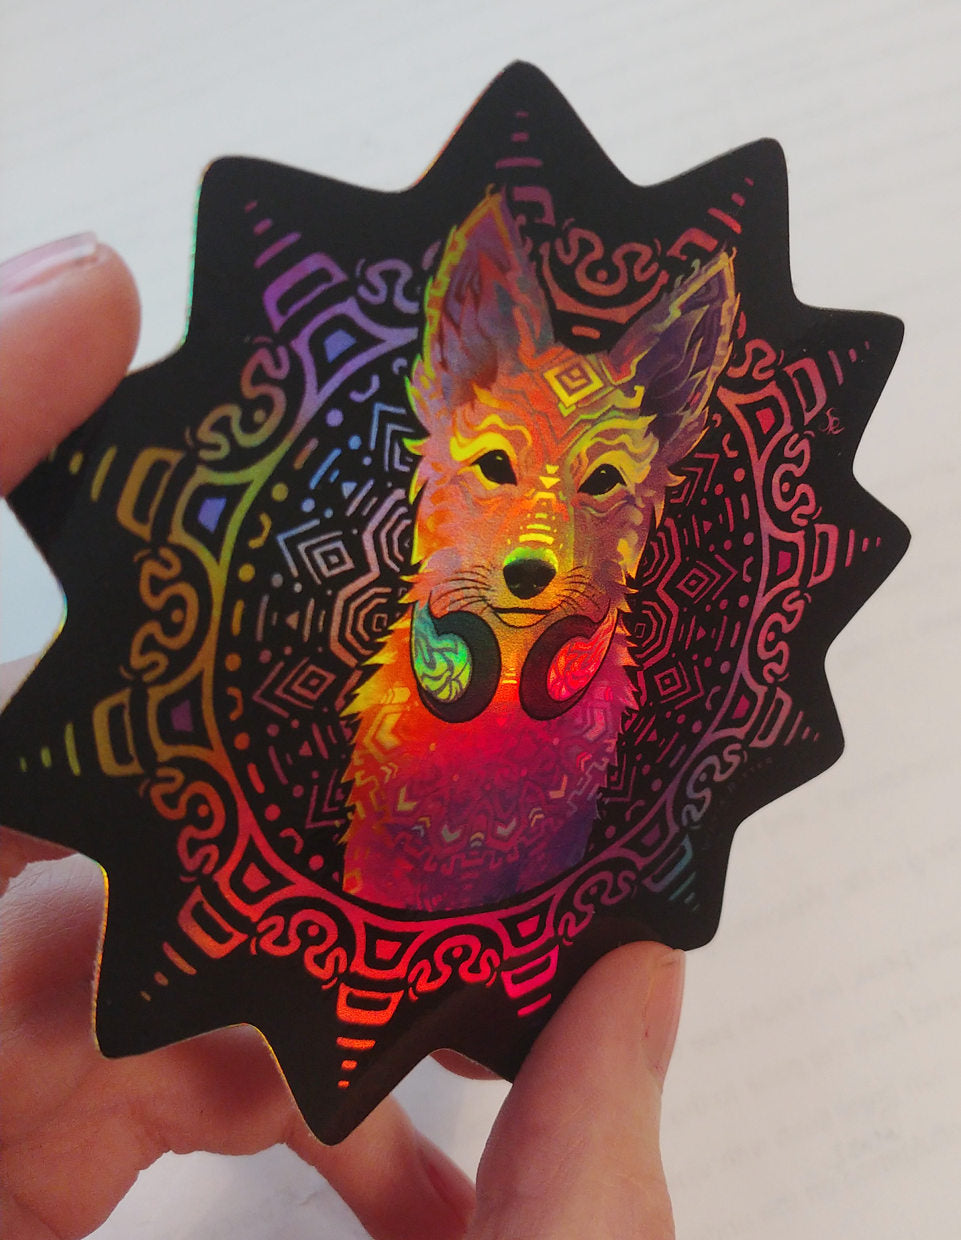 Disco Dingo - Holographic Sticker